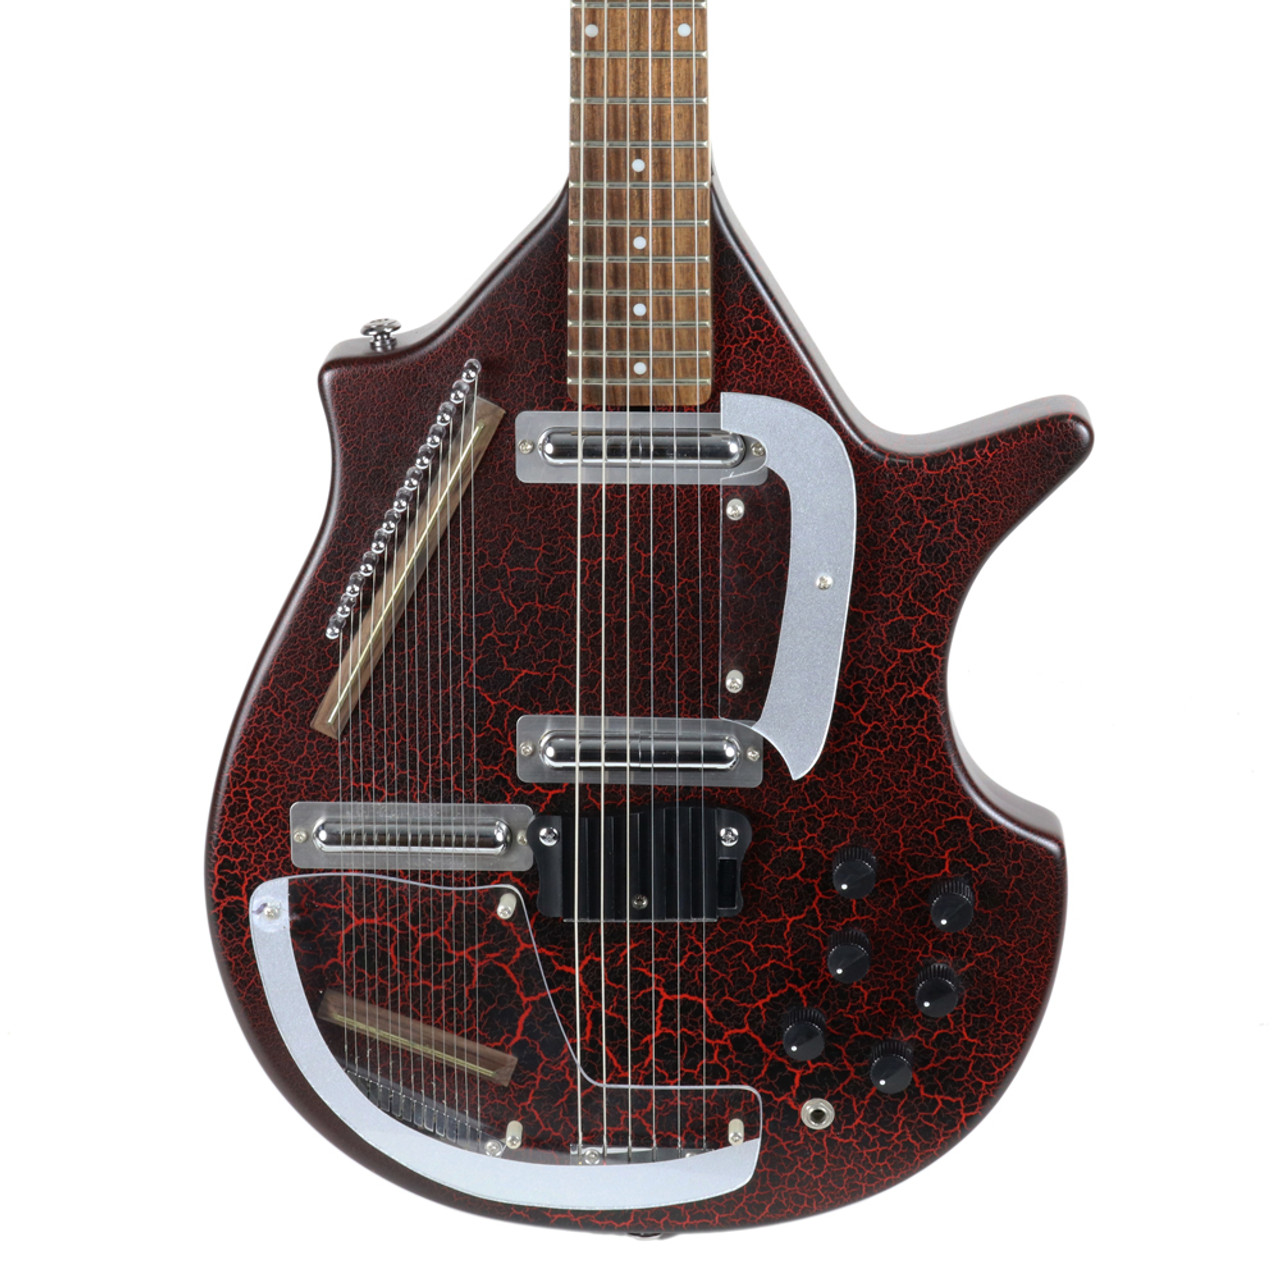 used rogue electric sitar guitar in red crackle finish cream city music. Black Bedroom Furniture Sets. Home Design Ideas